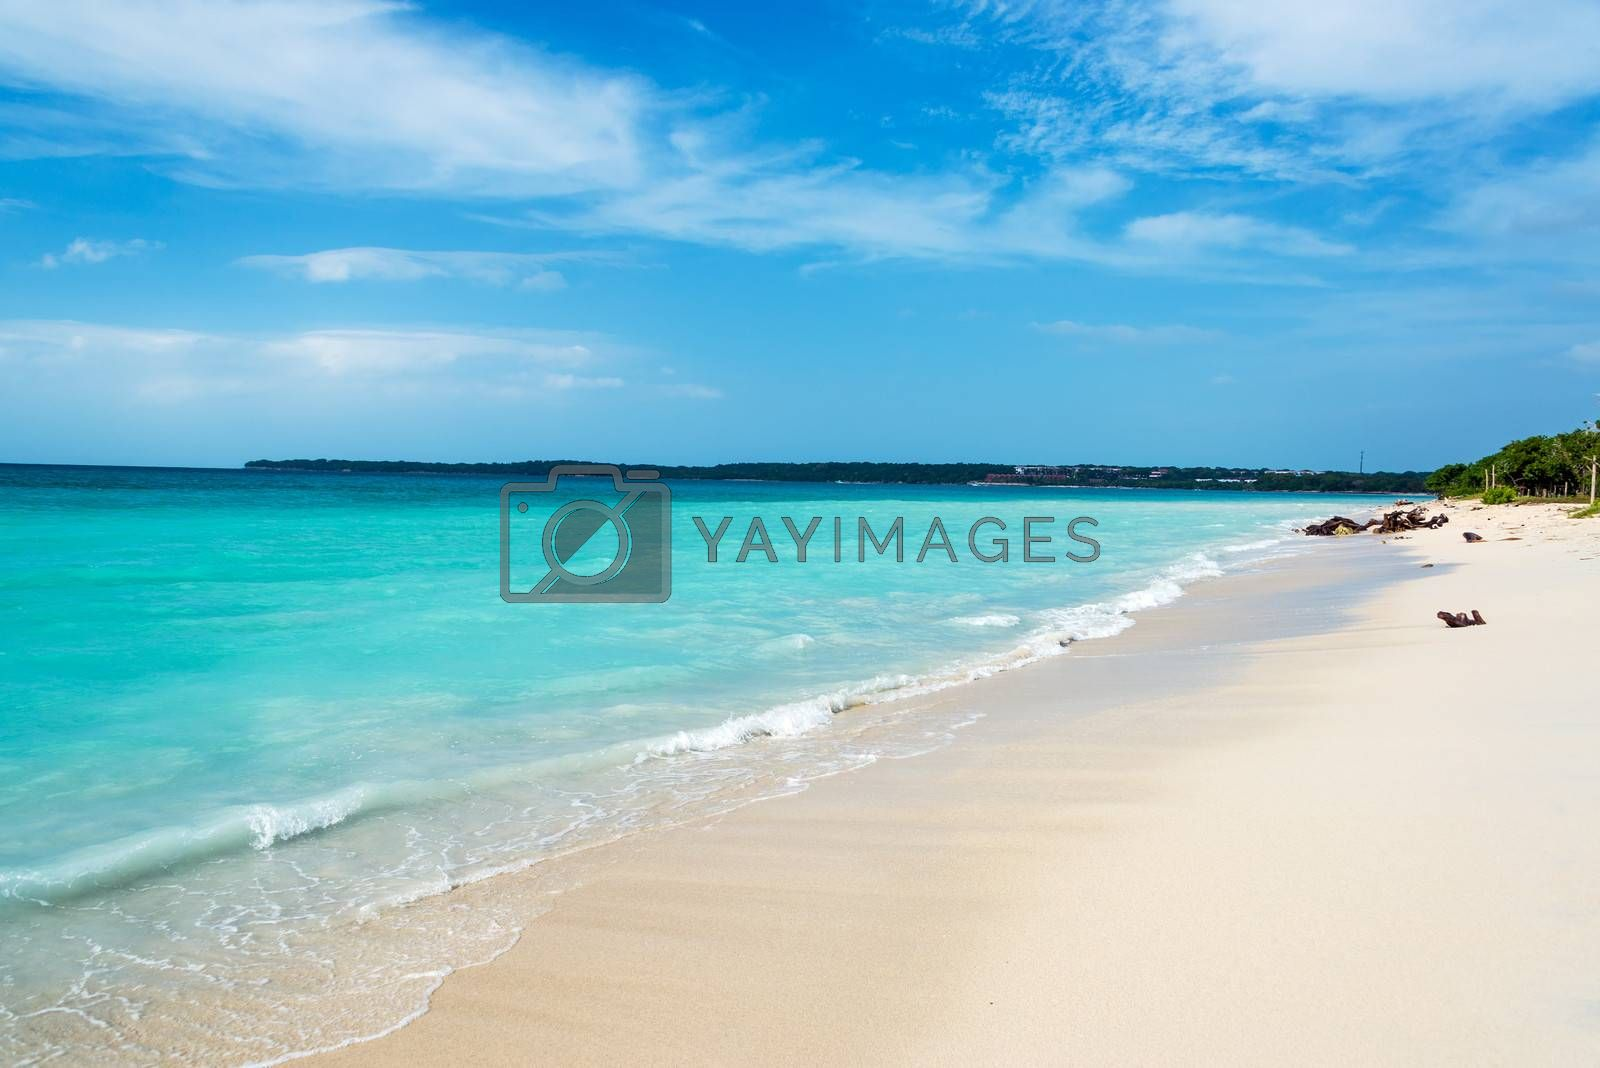 Stunning turquoise Caribbean water at Playa Blanca near Cartagena, Colombia